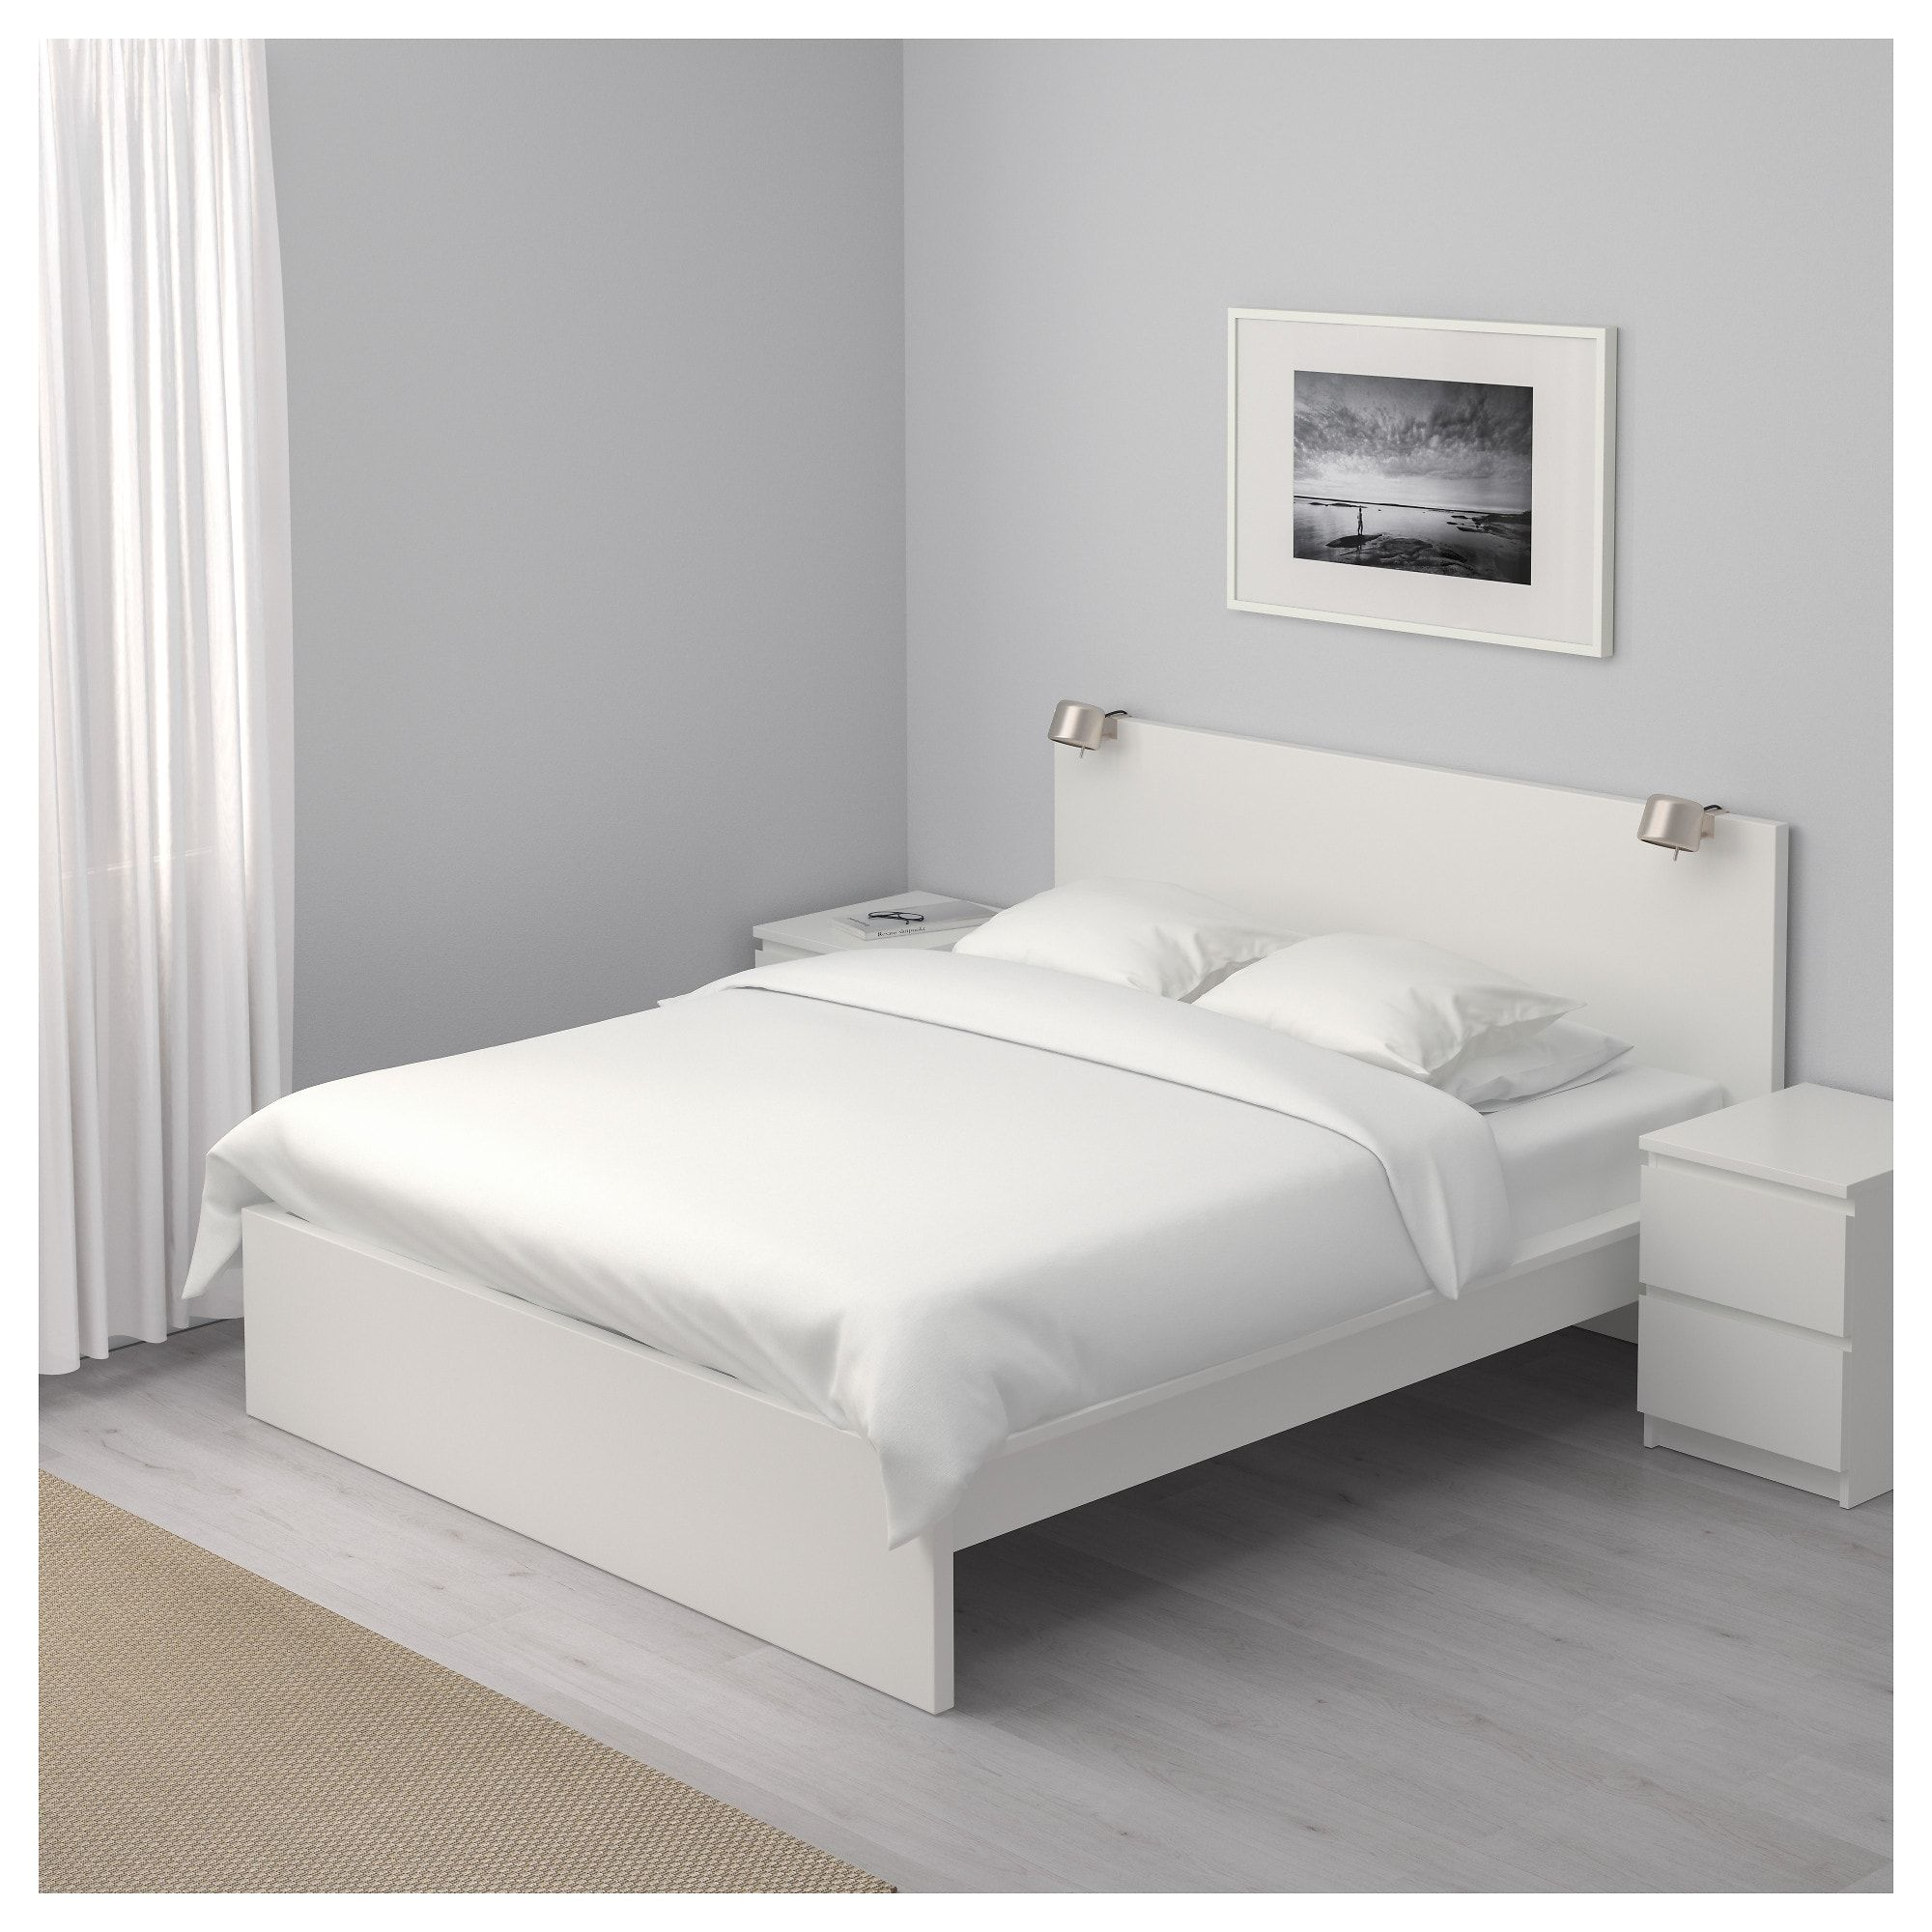 Ikea Us Furniture And Home Furnishings Malm Bed Frame Ikea Bed Frames White Bed Frame